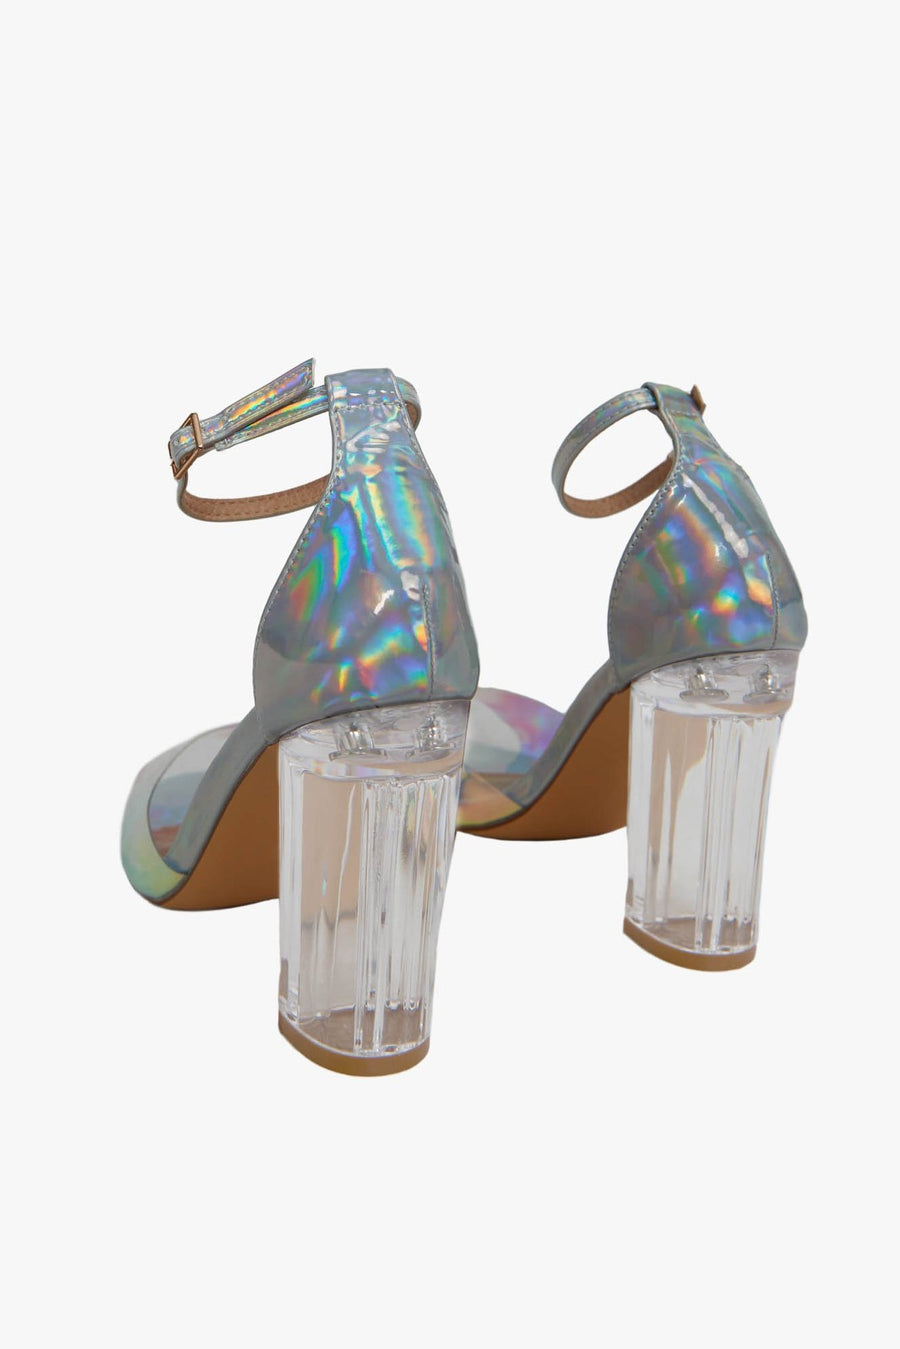 Cosmic Hologram Shoes